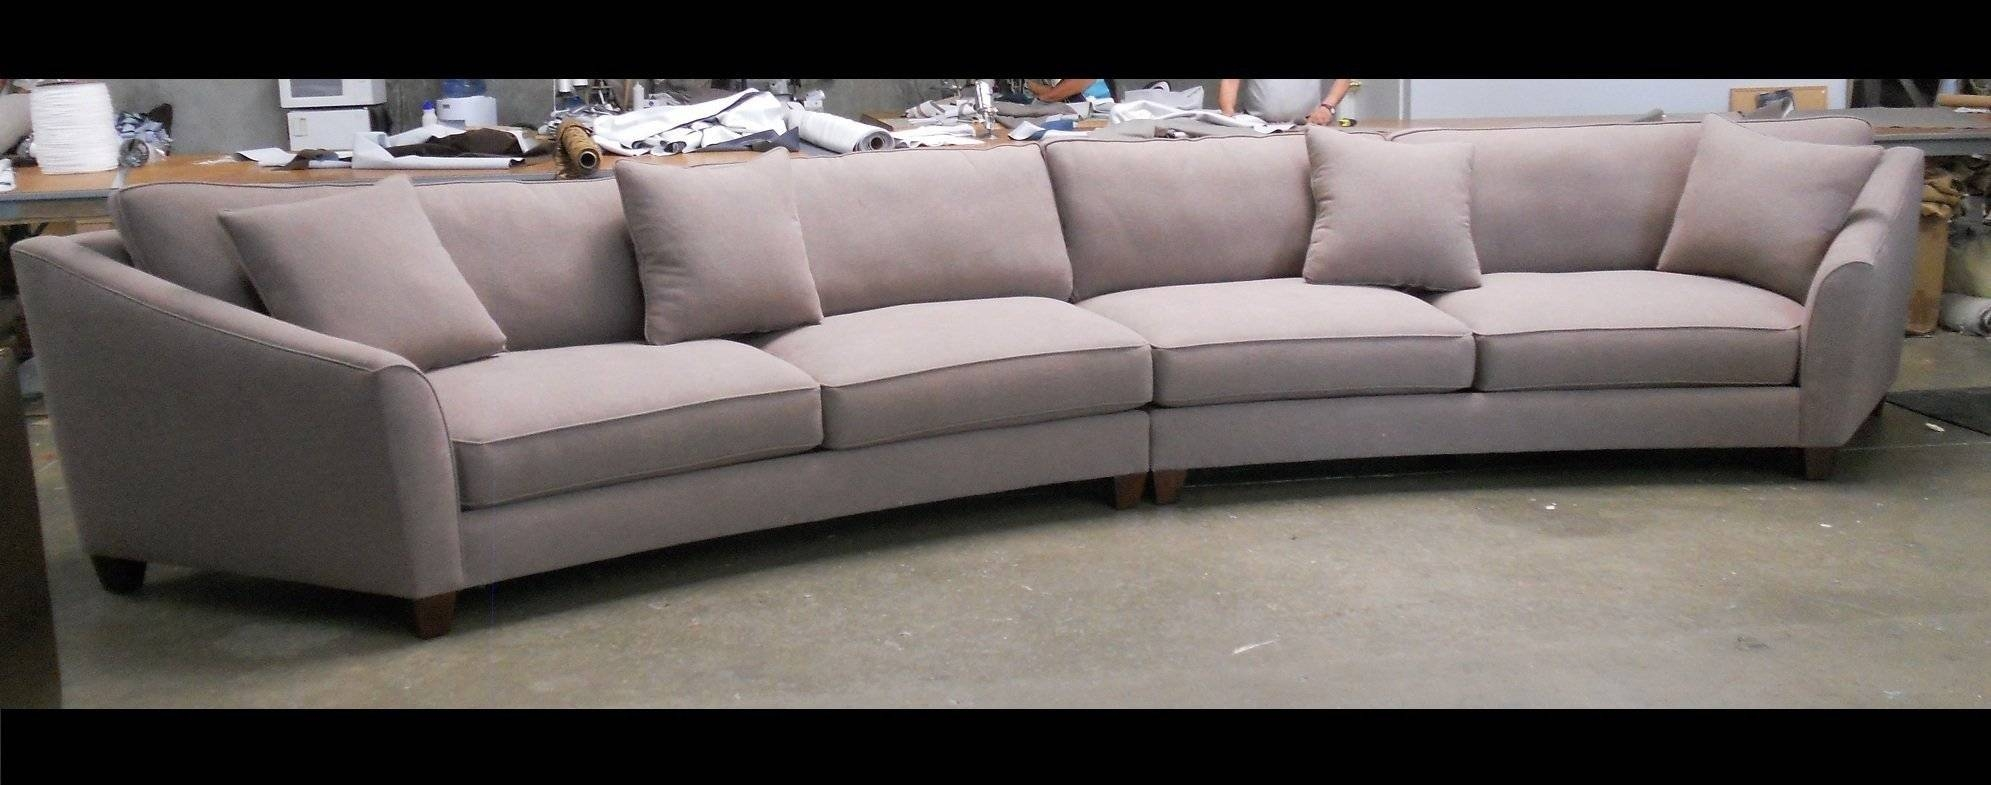 Curved Sectional Sofa Set - Rich Comfortable Upholstered Fabric with regard to Round Sectional Sofa Bed (Image 7 of 25)